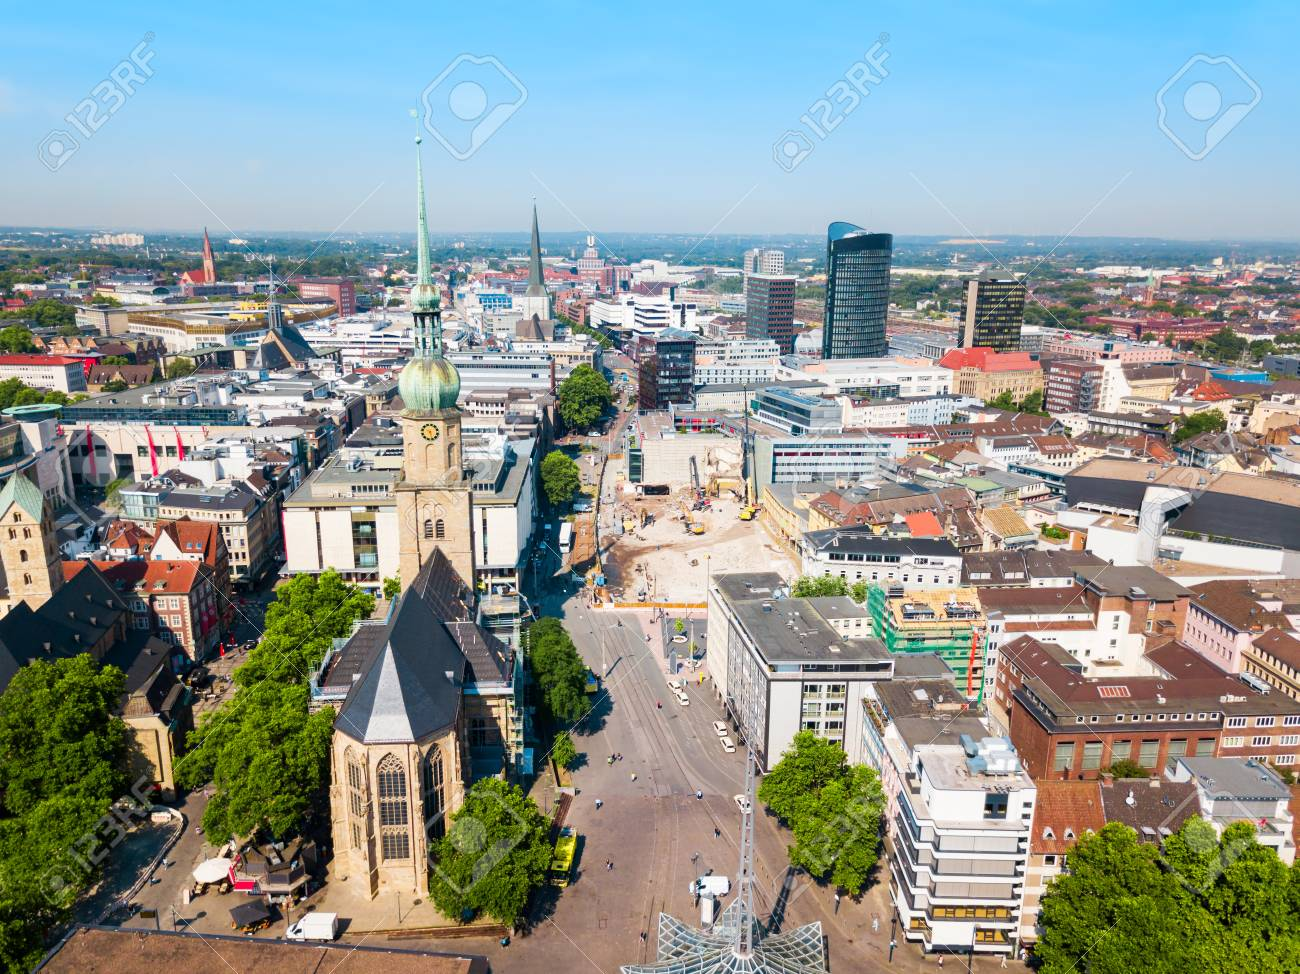 Dortmund City Centre Aerial Panoramic View In Germany Stock Photo, Picture  And Royalty Free Image. Image 112241024.